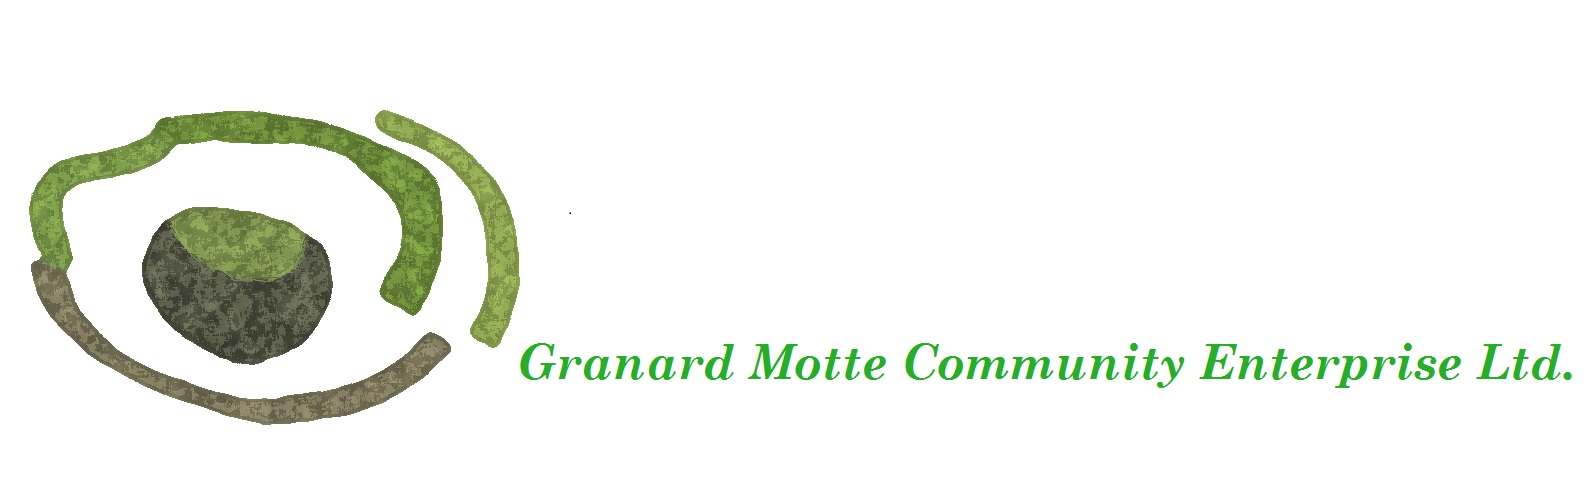 Granard Motte Community Enterprises Ltd